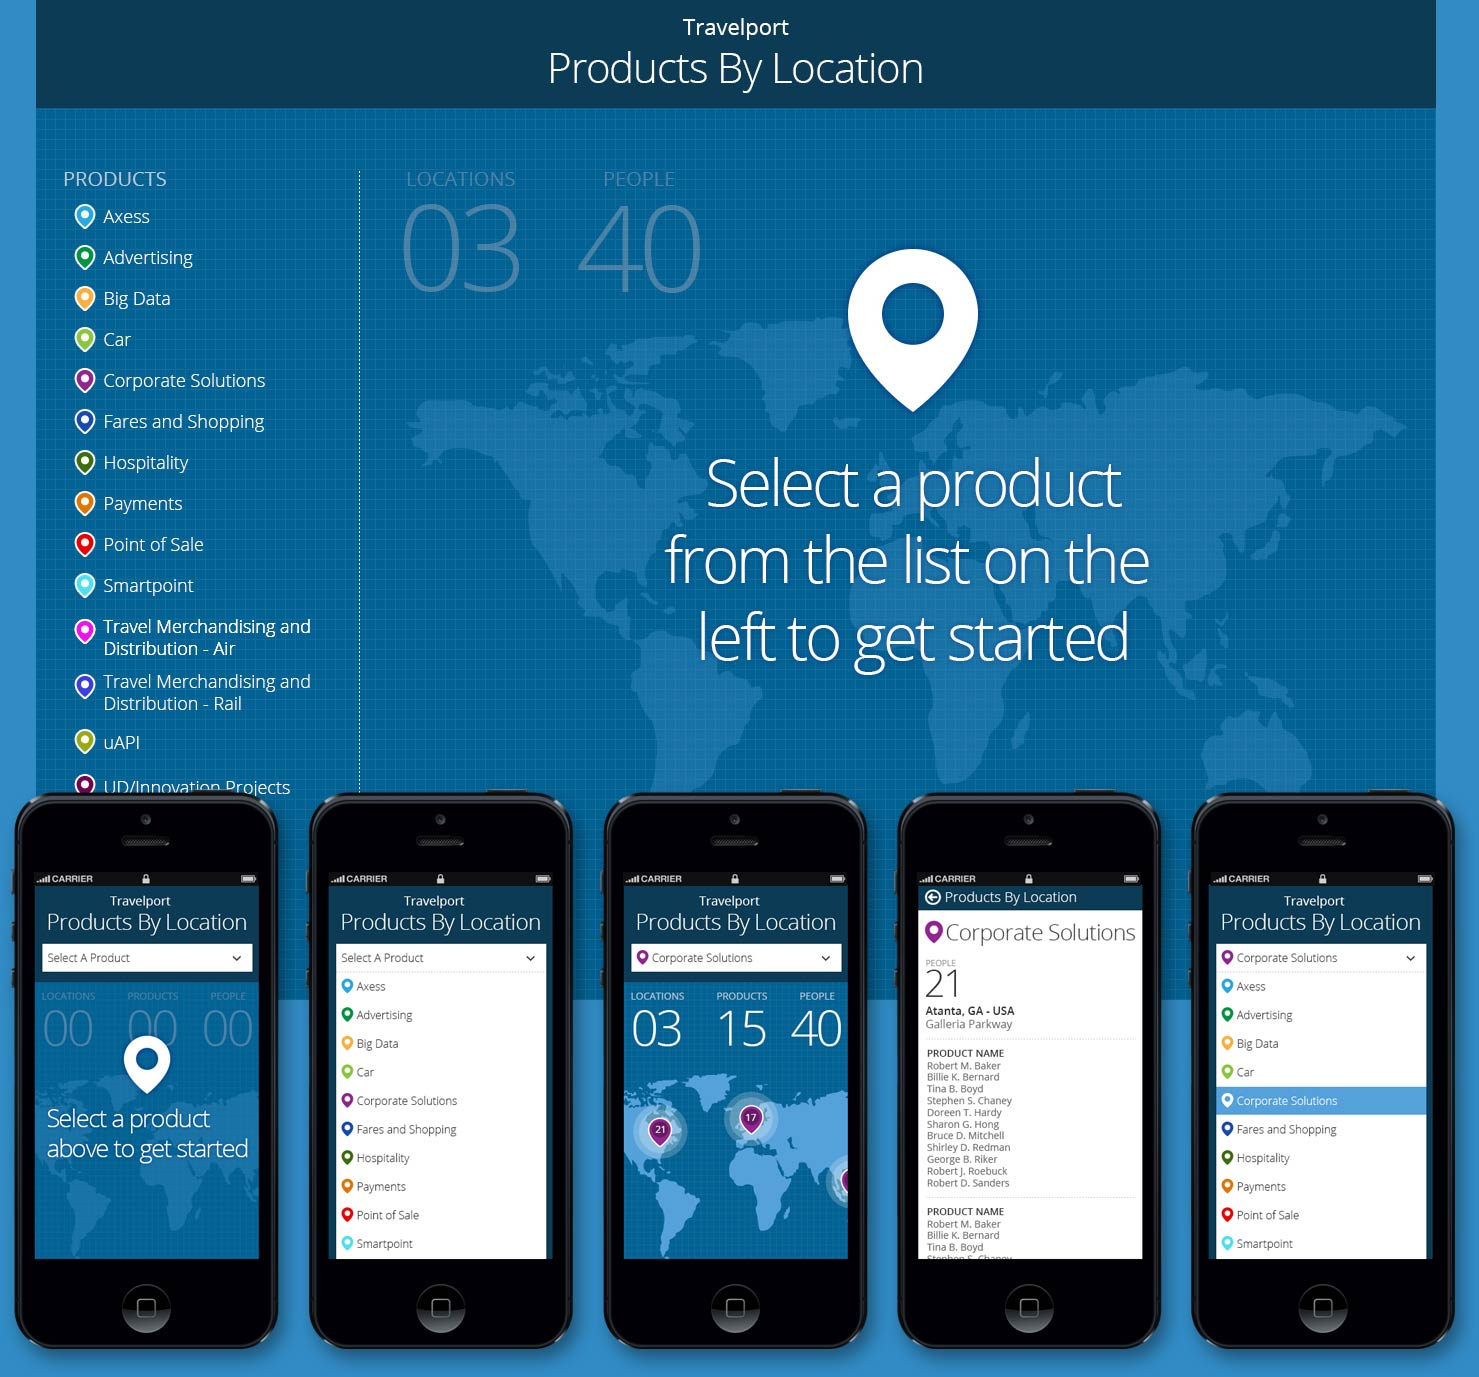 Products By Location Select Product